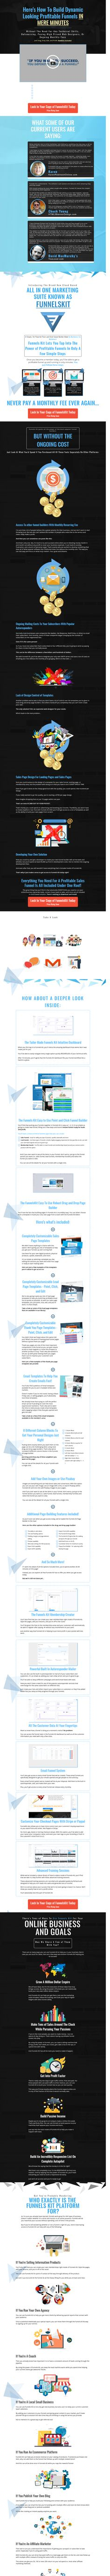 FunnelsKit is Funnel Creation Software To Build Funnels Page Easy Include Sales Funnels, Lead Funnels, and Membership Funnels with Drag and Drop Page Builder, Professional Customizable Templates, and More Complete Features. The post FunnelsKit – Platinum appeared first on DiscountSAAS. Marketing Software, Internet Marketing, Seo Tools, You Lost Me, Drop, Templates, Popular, Easy, Stencils